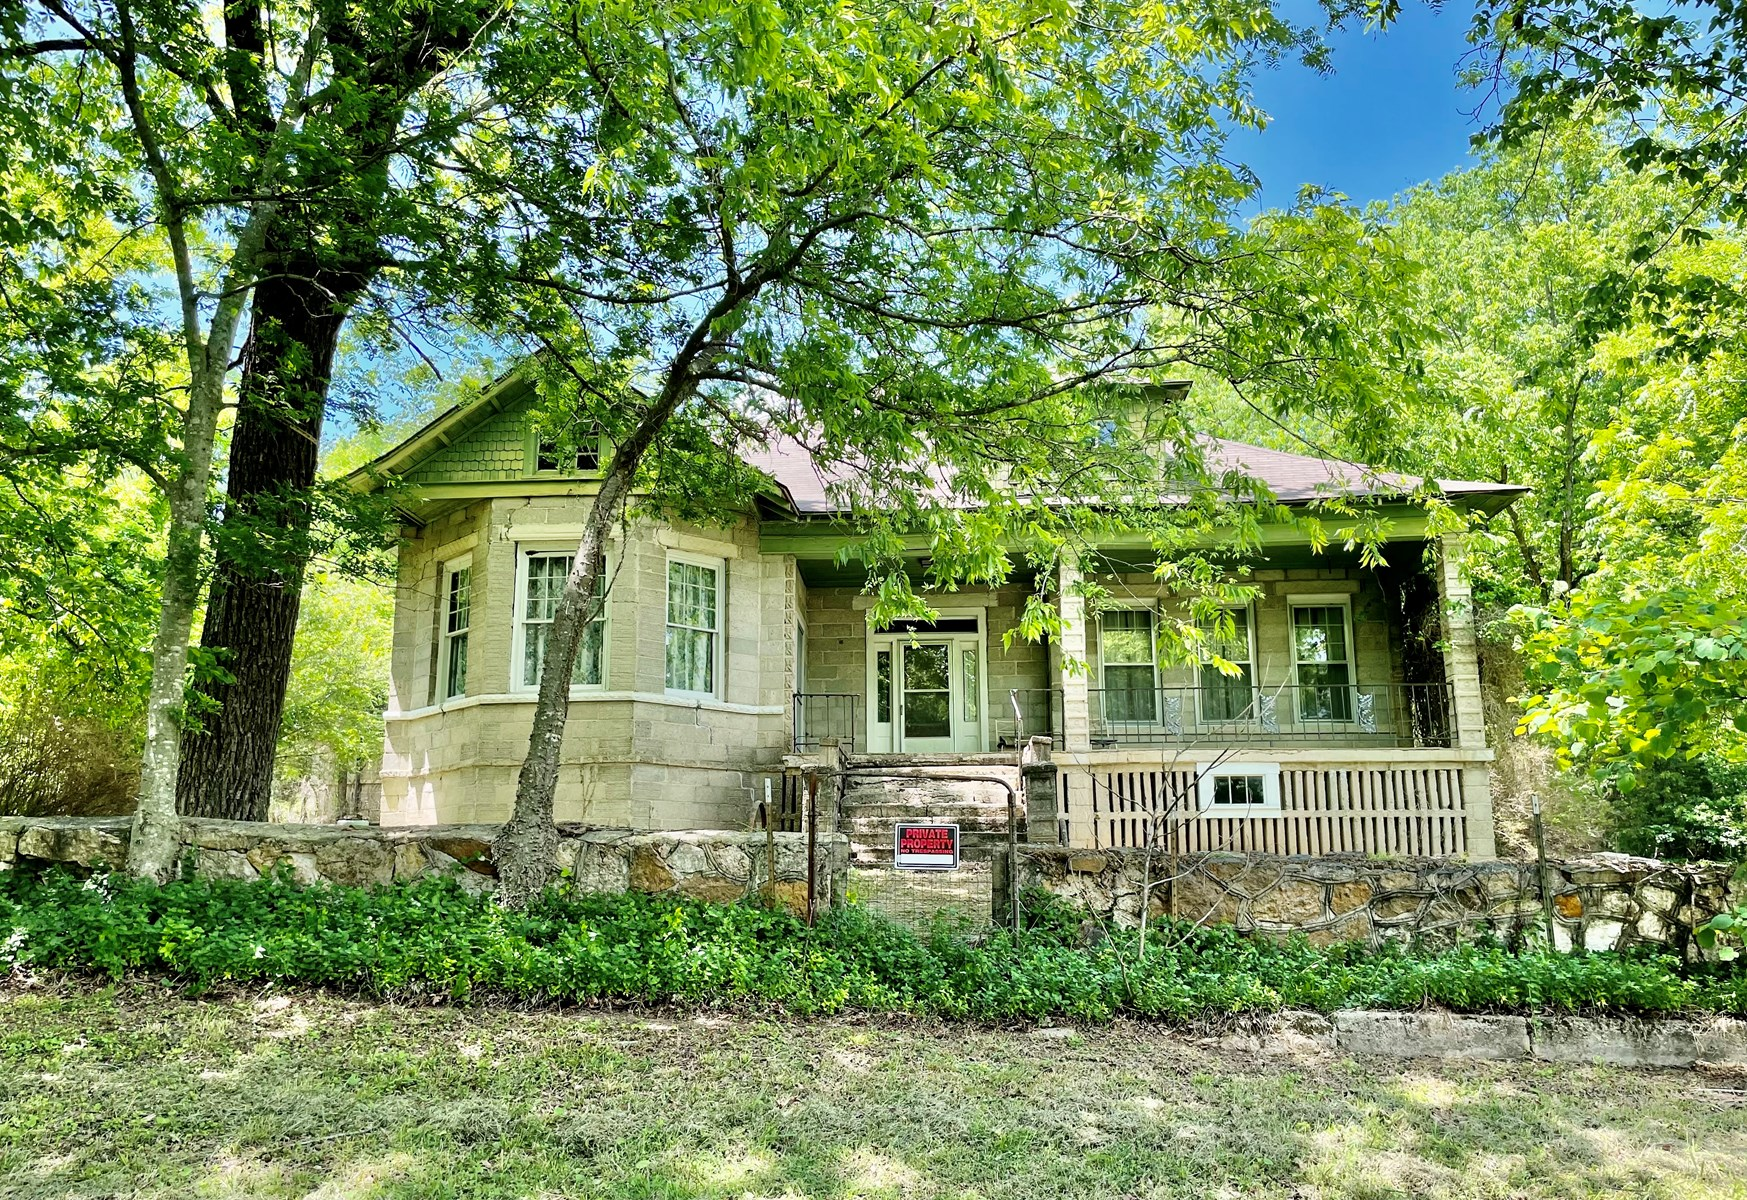 HISTORIC HOME IN ARKANSAS FOR SALE ON 25 ACRES